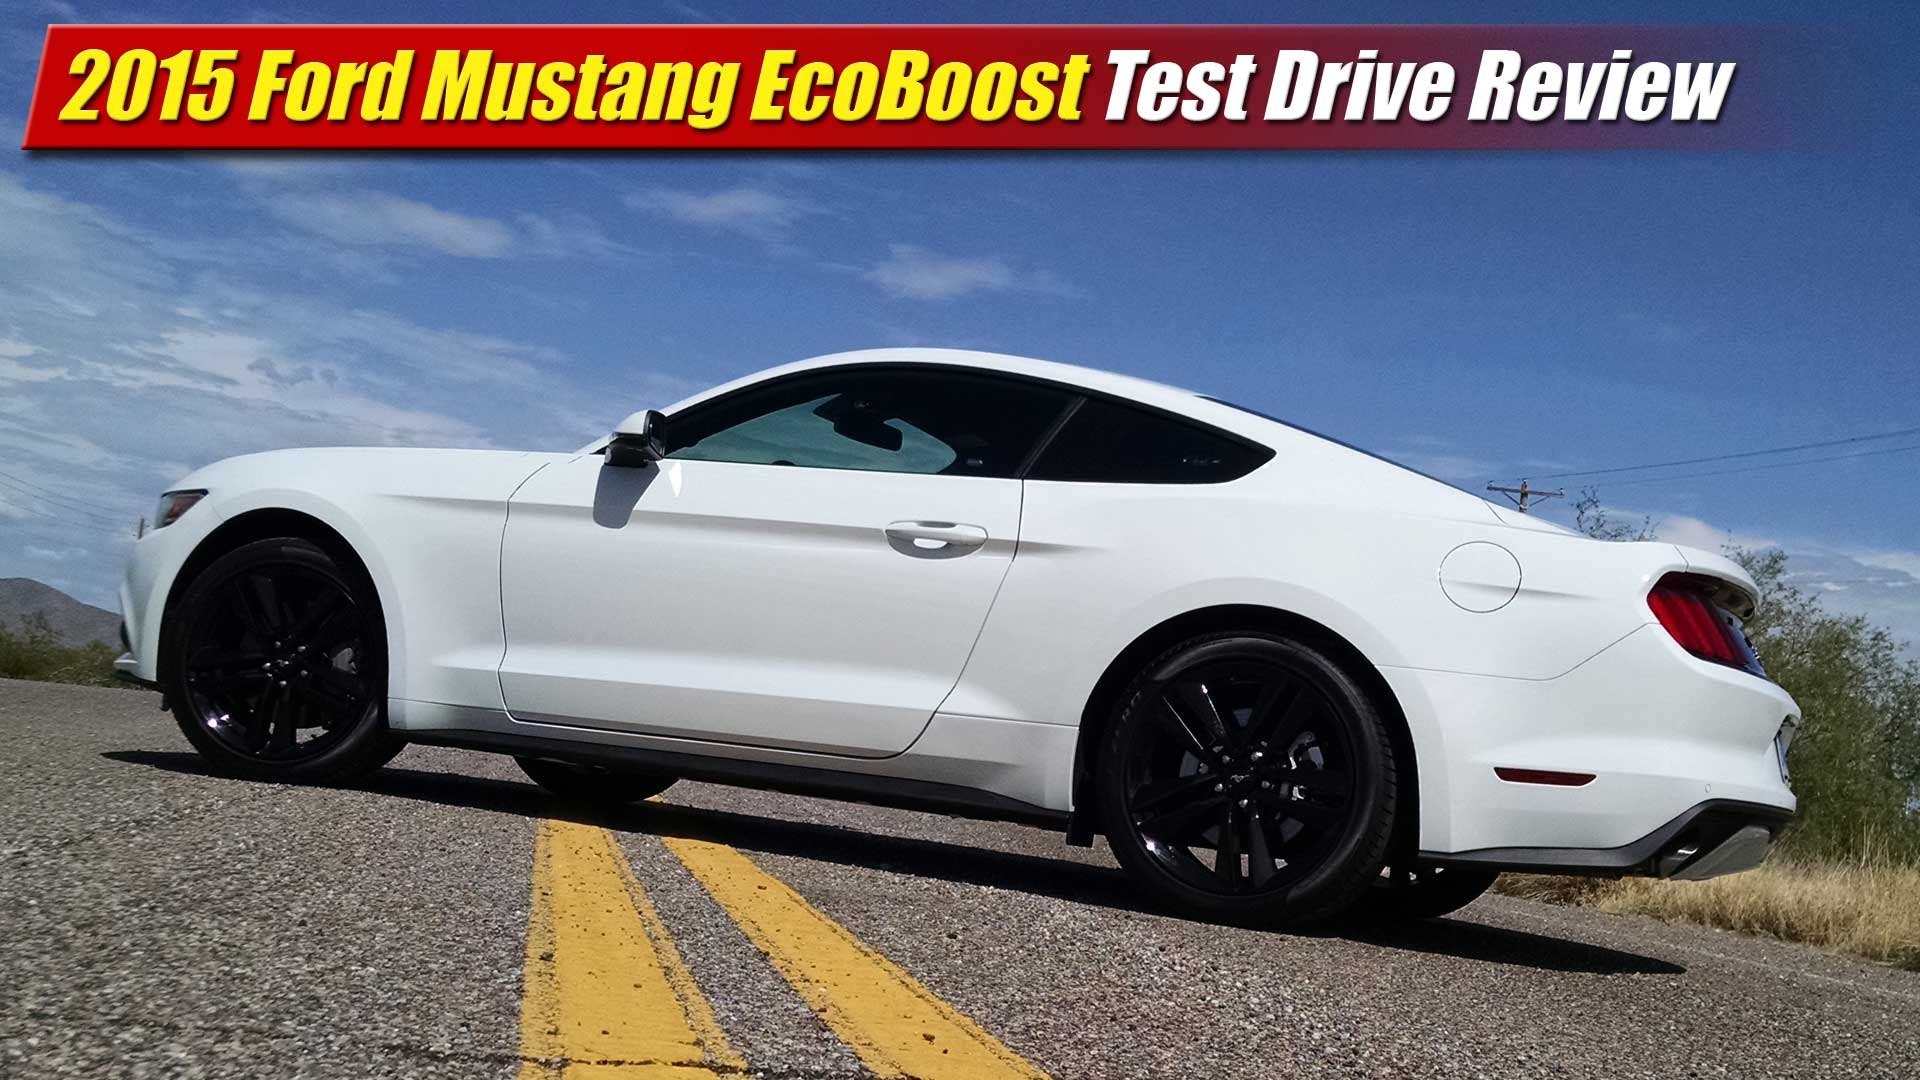 Test Drive Review: 2015 Ford Mustang EcoBoost - TestDriven TV